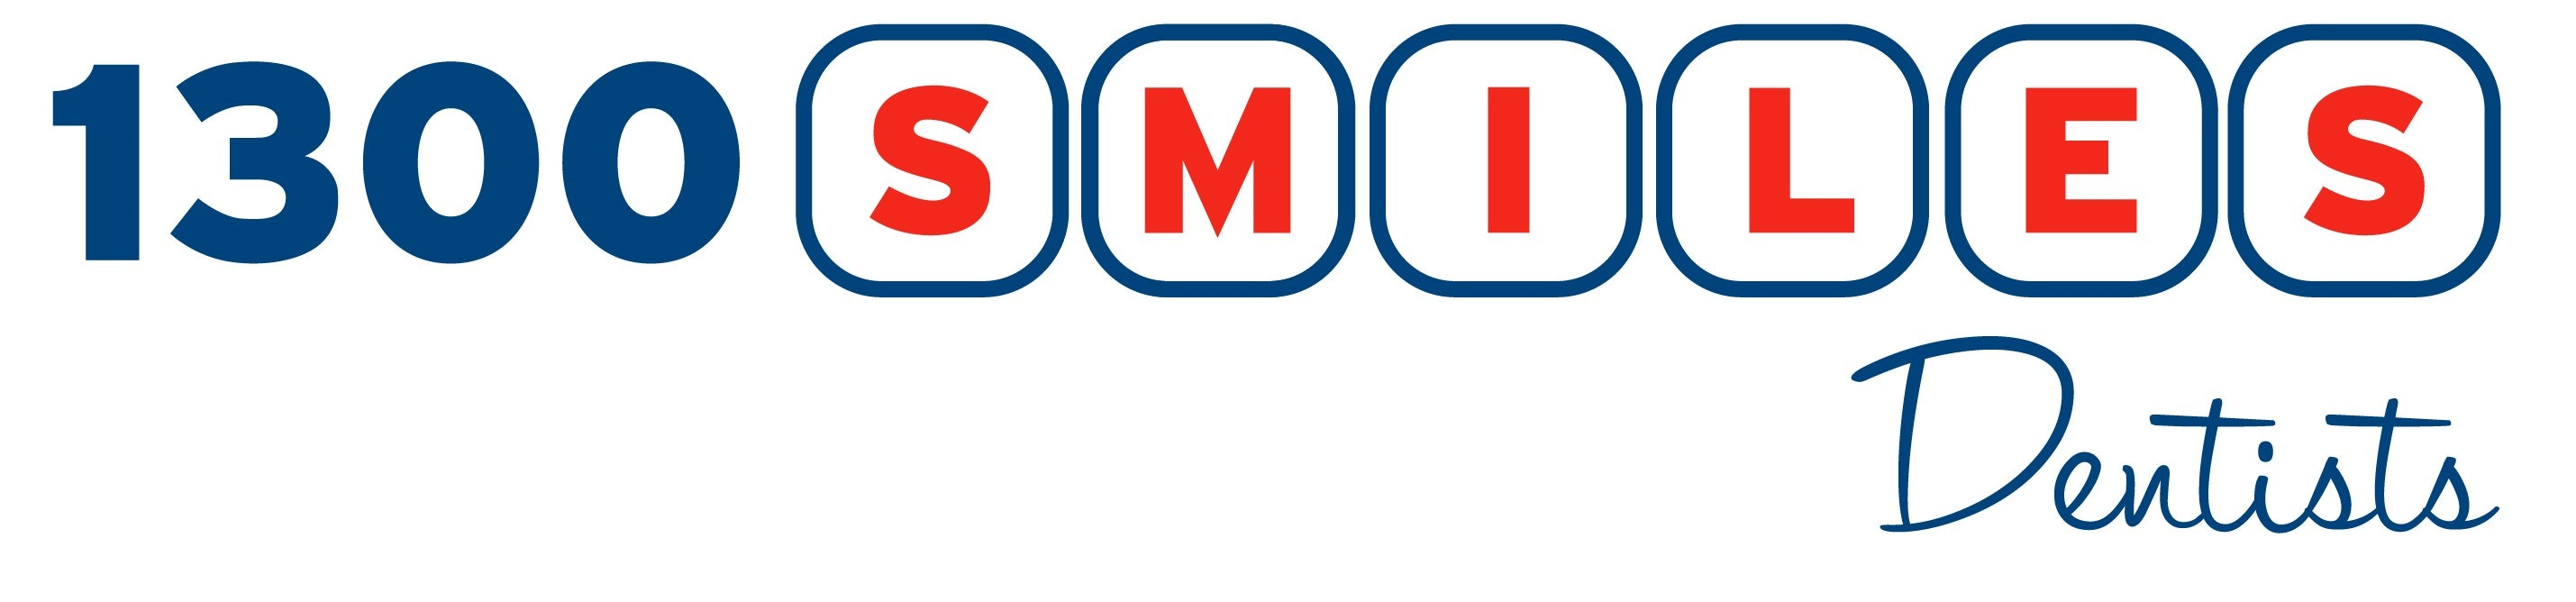 logo for 1300 Smiles - Fulham Road Dentists